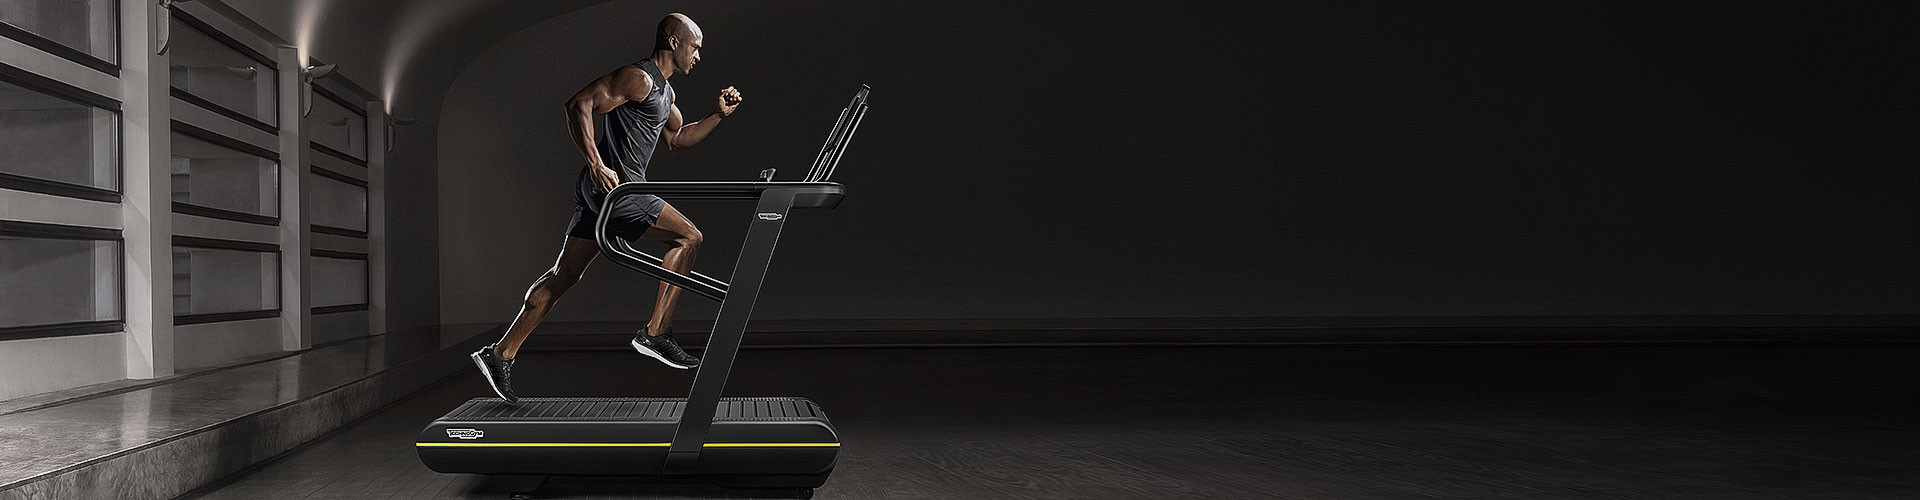 Treadmill Technogym Egypt